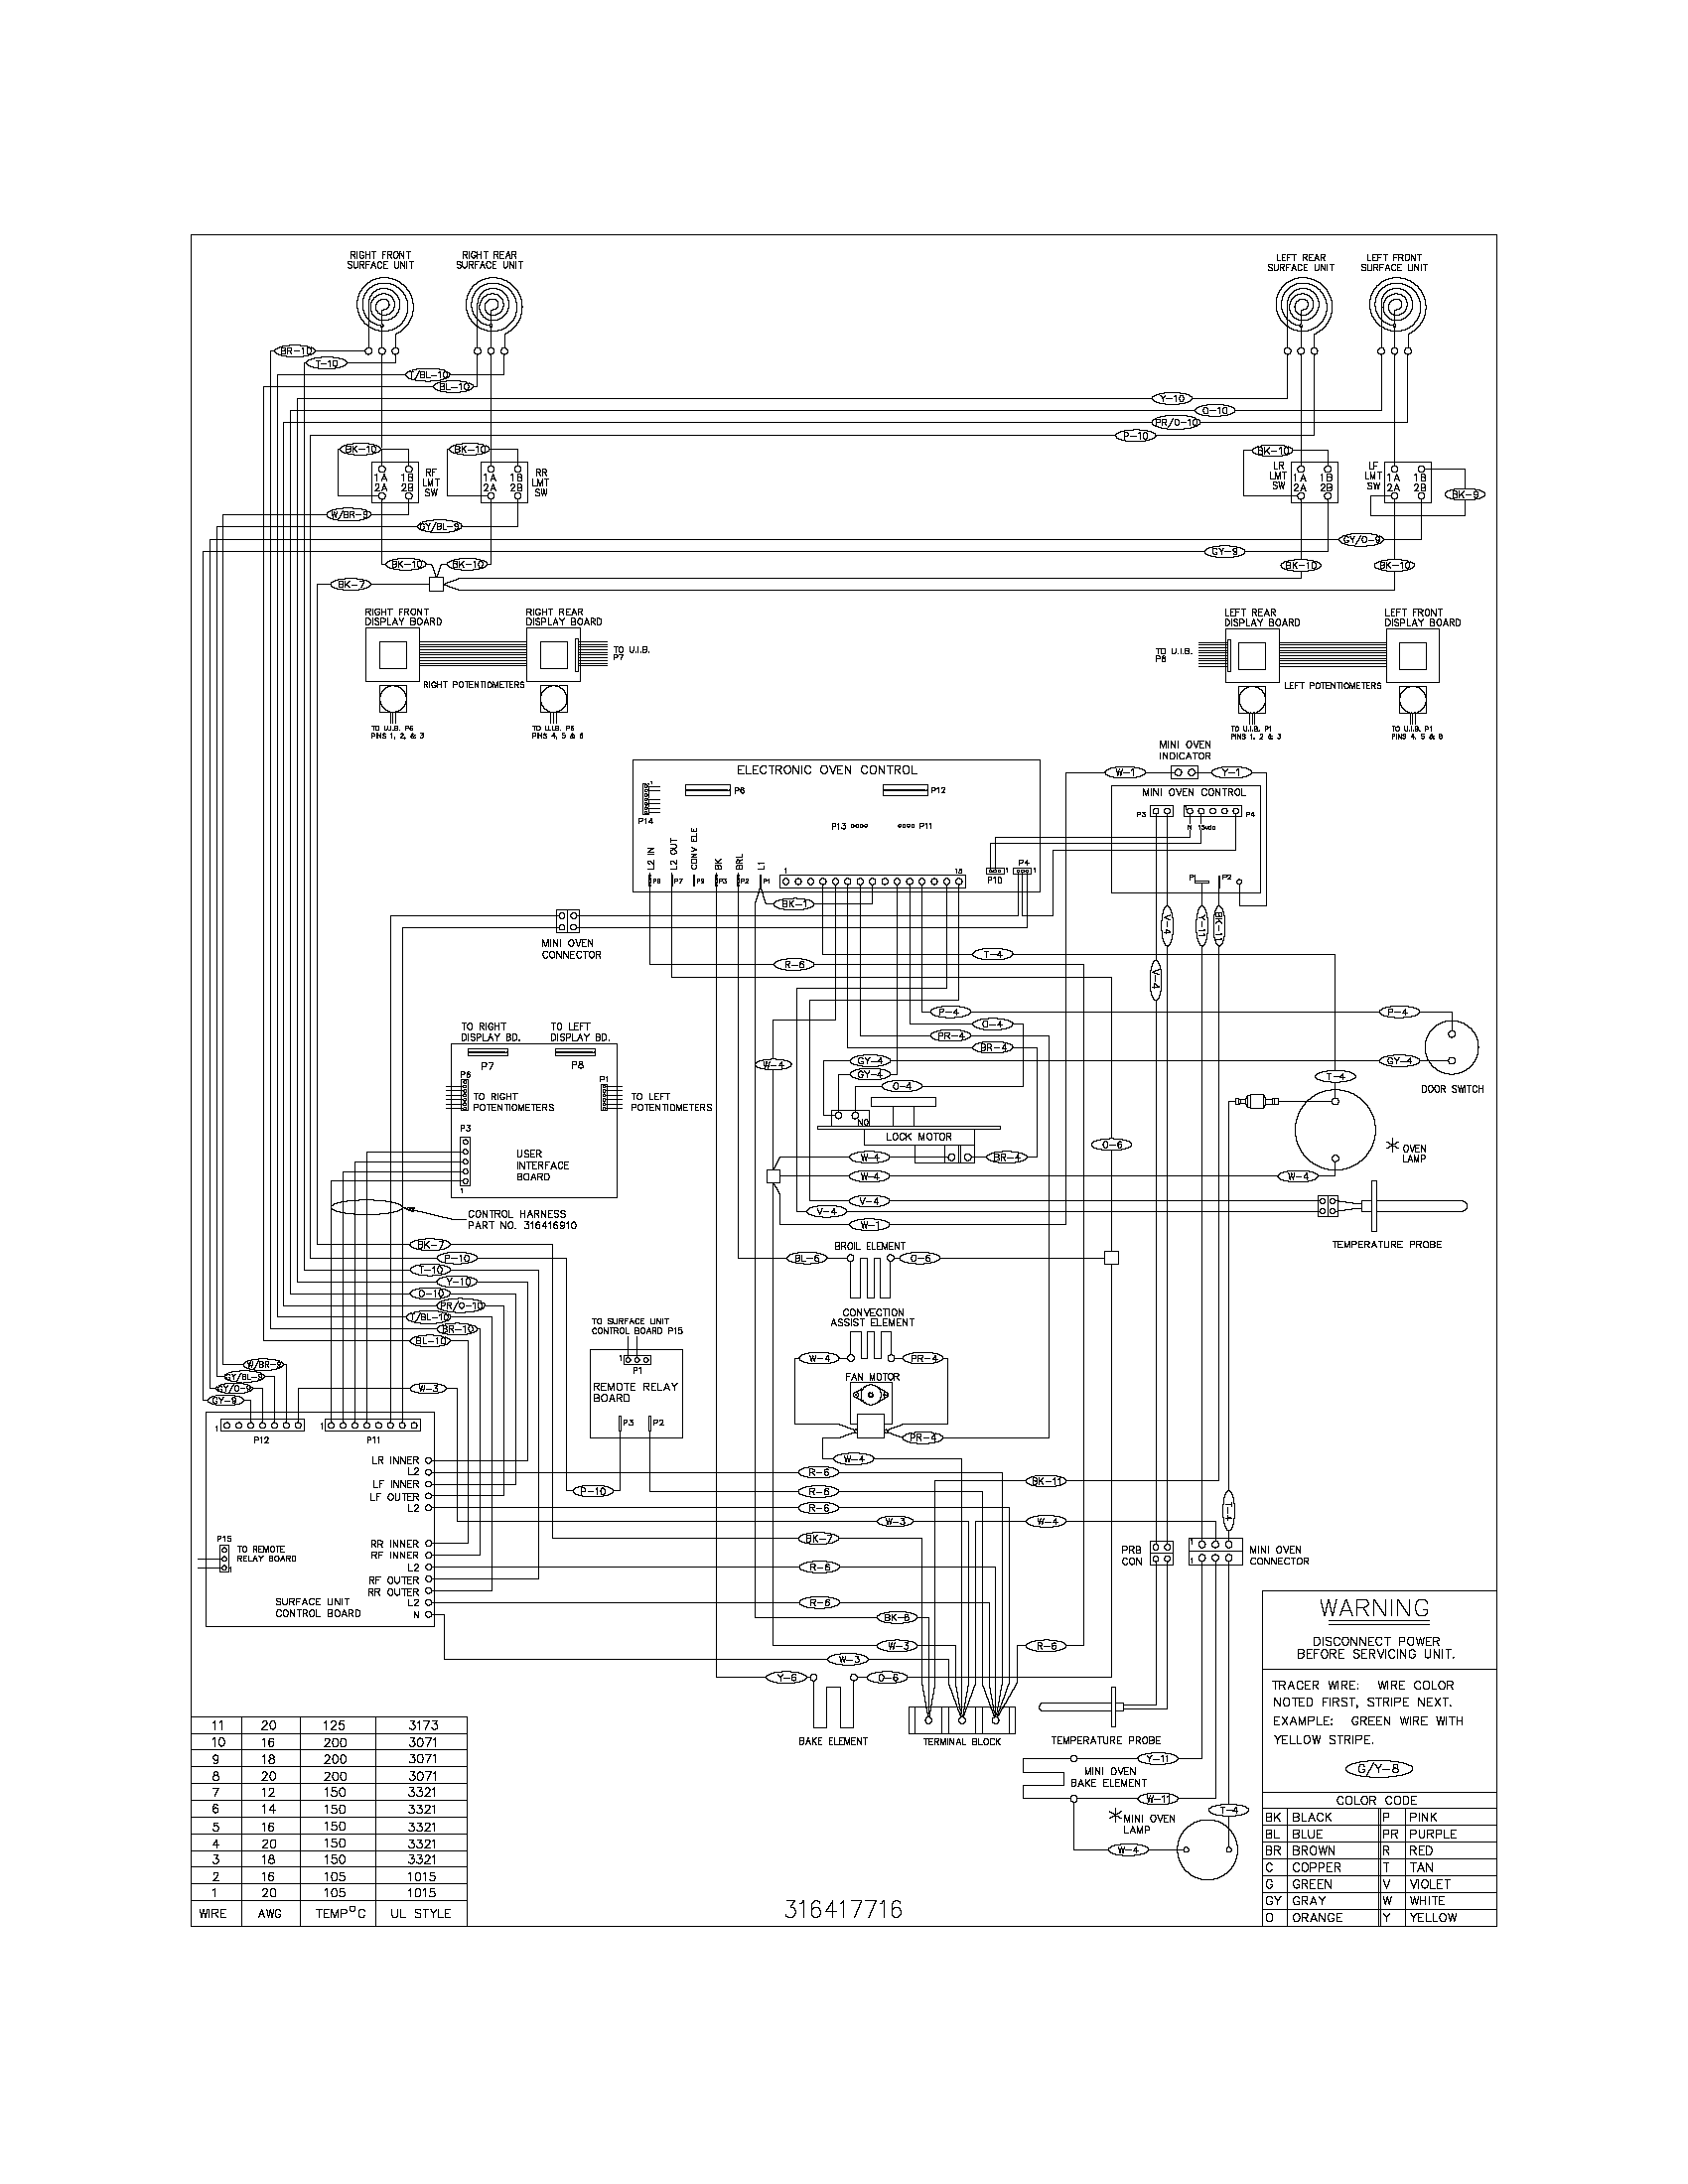 wiring diagram parts refrigerators parts frigidaire repair frigidaire gallery refrigerator wiring diagram at webbmarketing.co